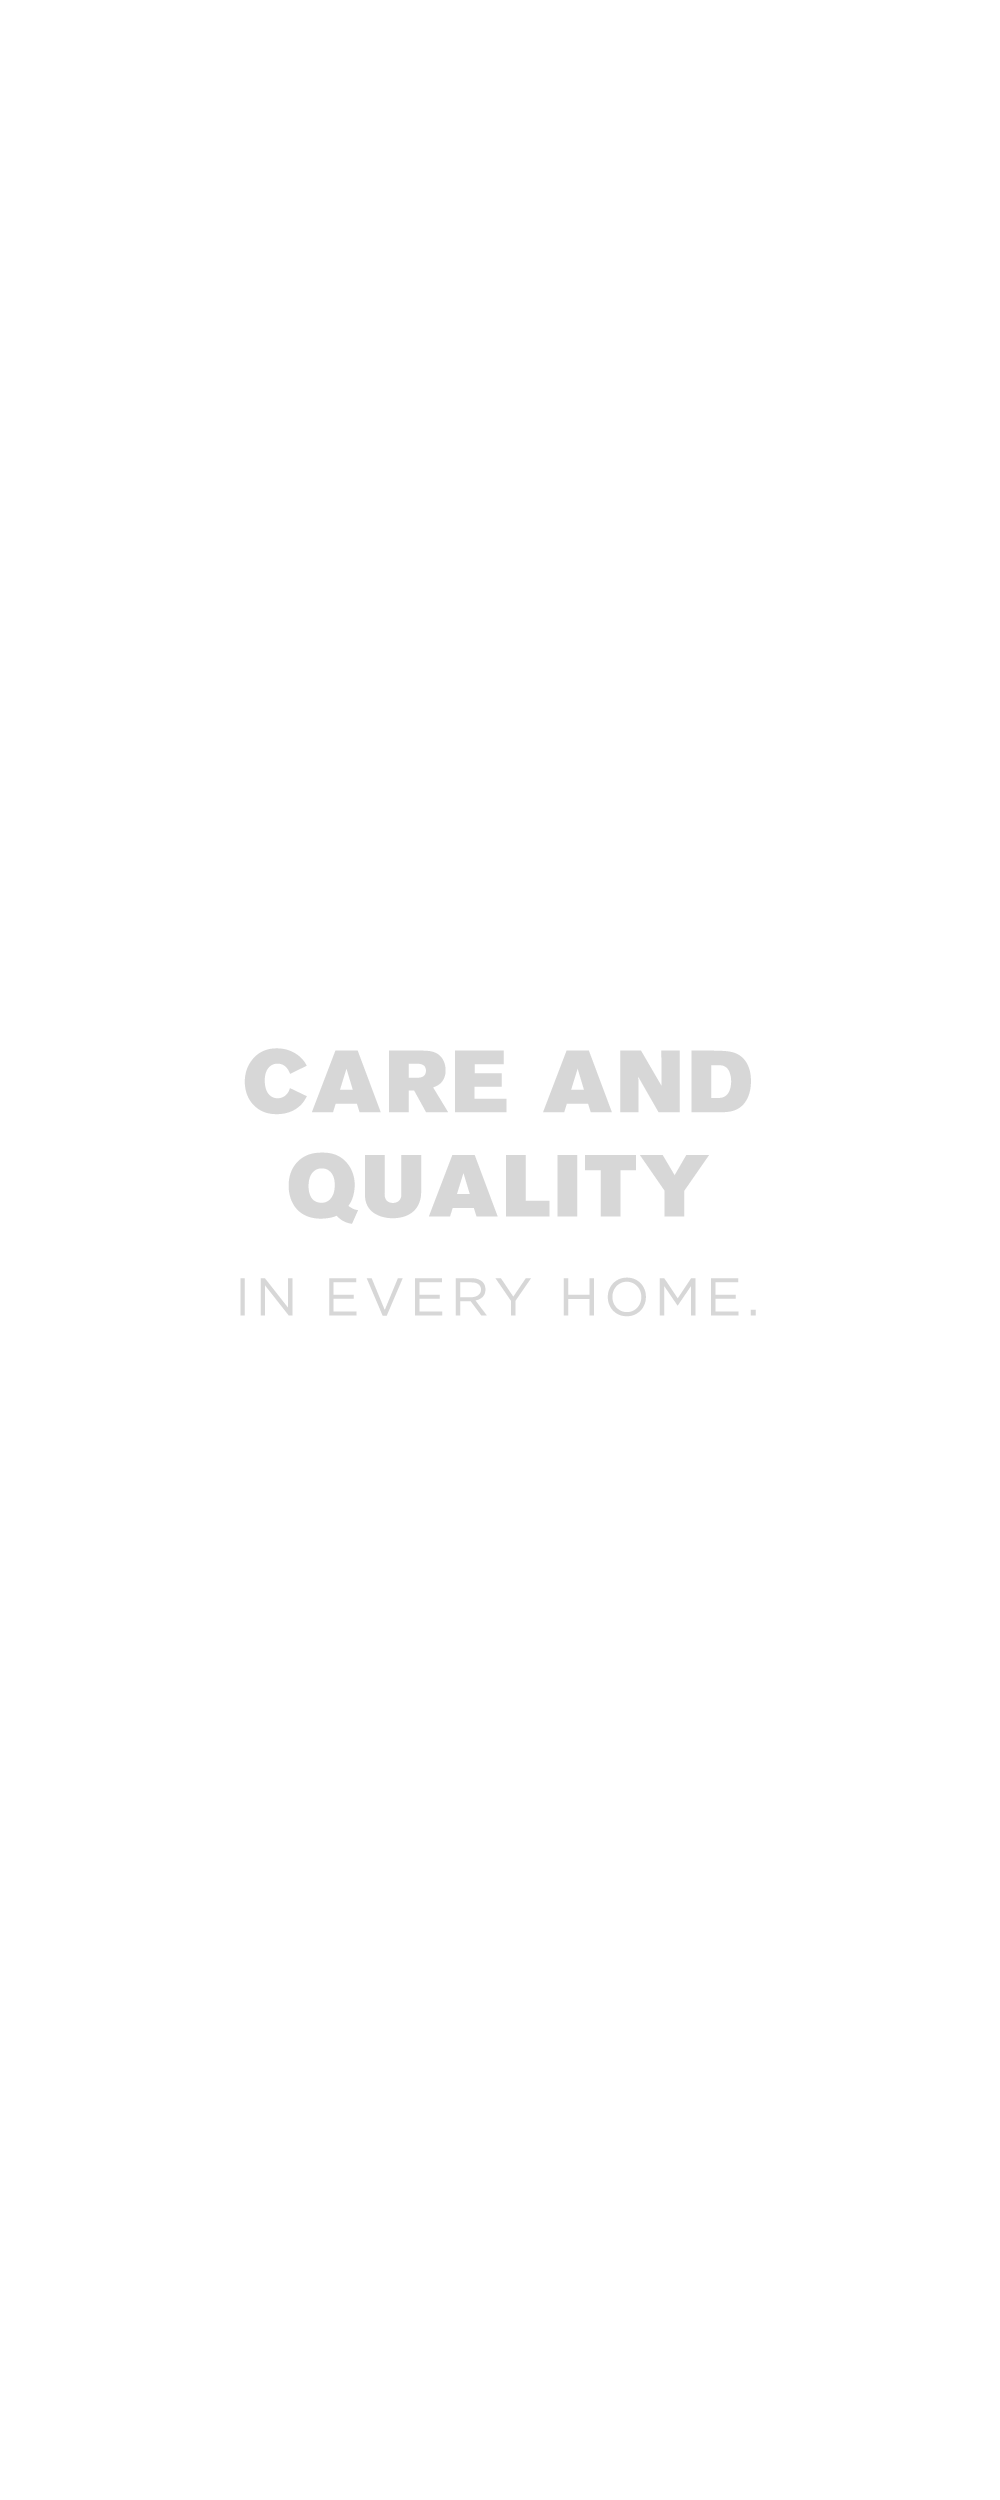 Care and Quality in Every Home